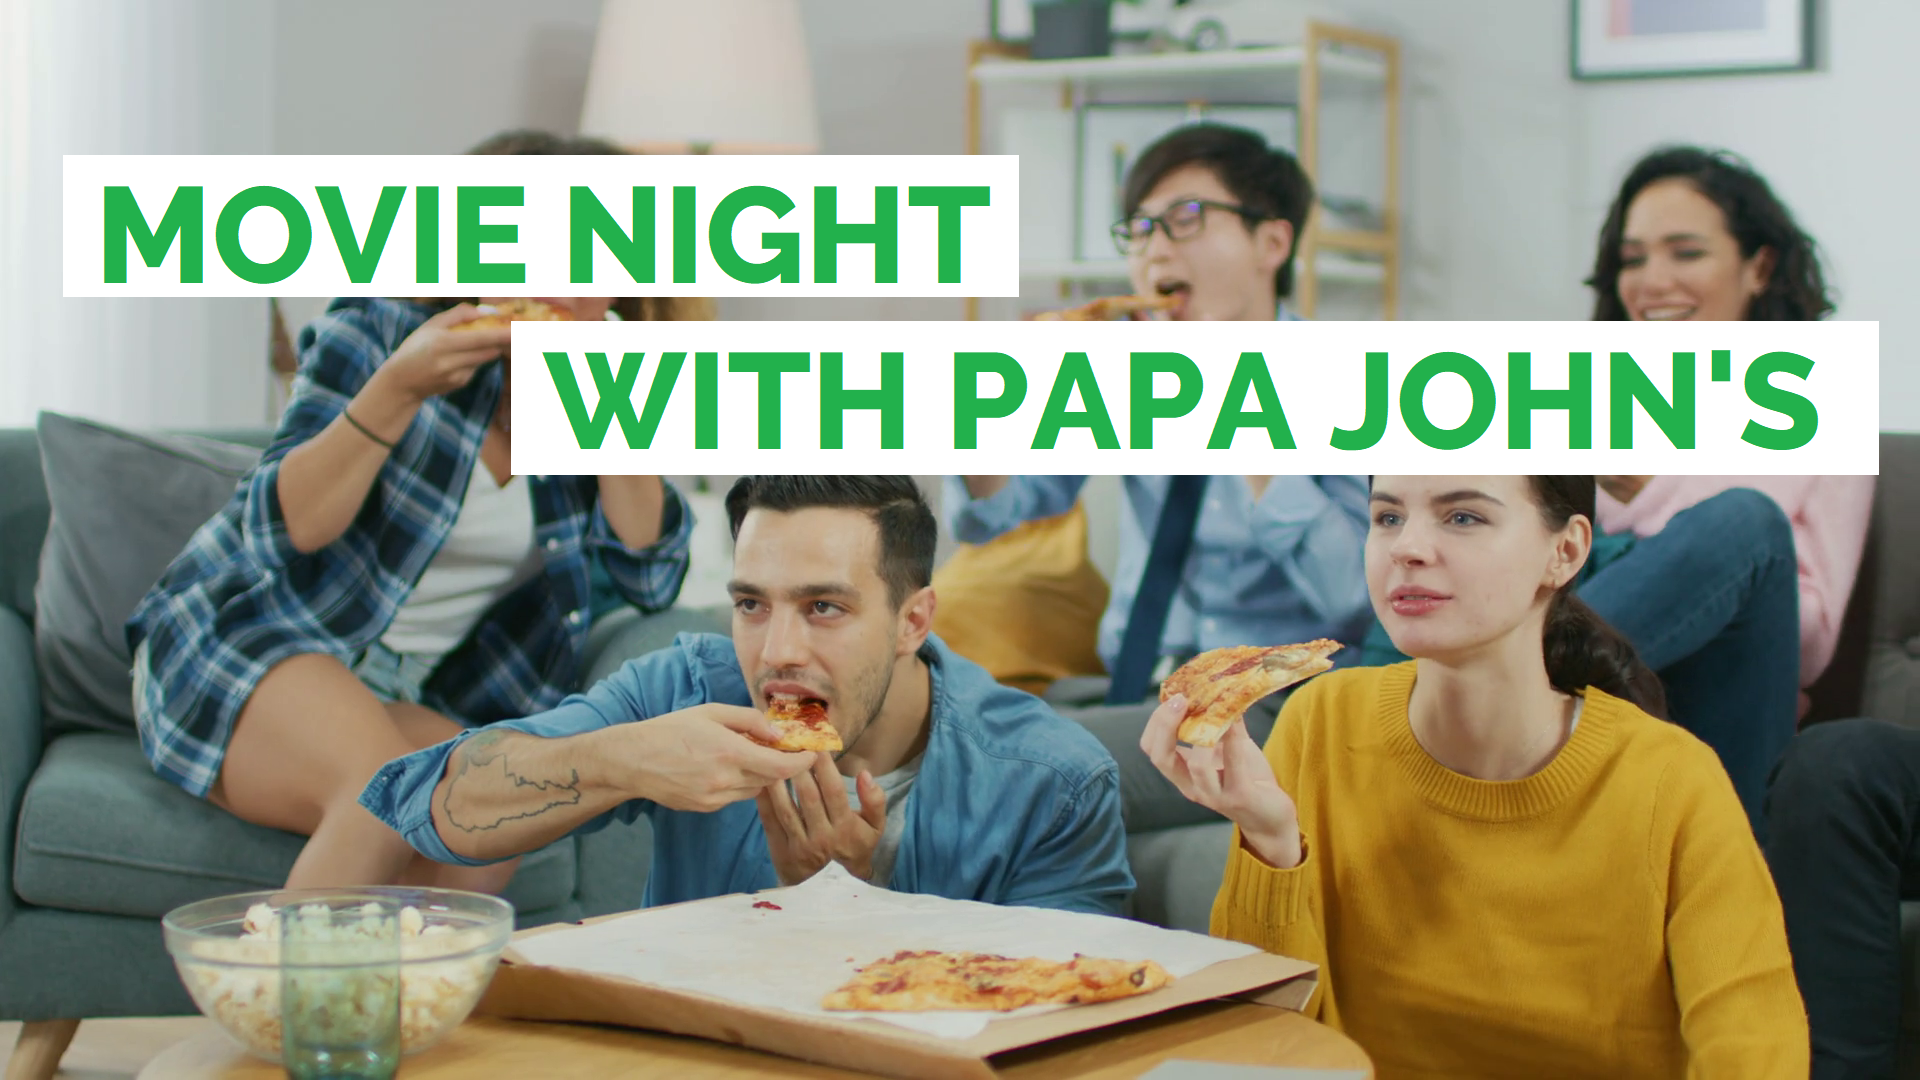 Its Movie Night What Pizza Should I Order Papa Johns